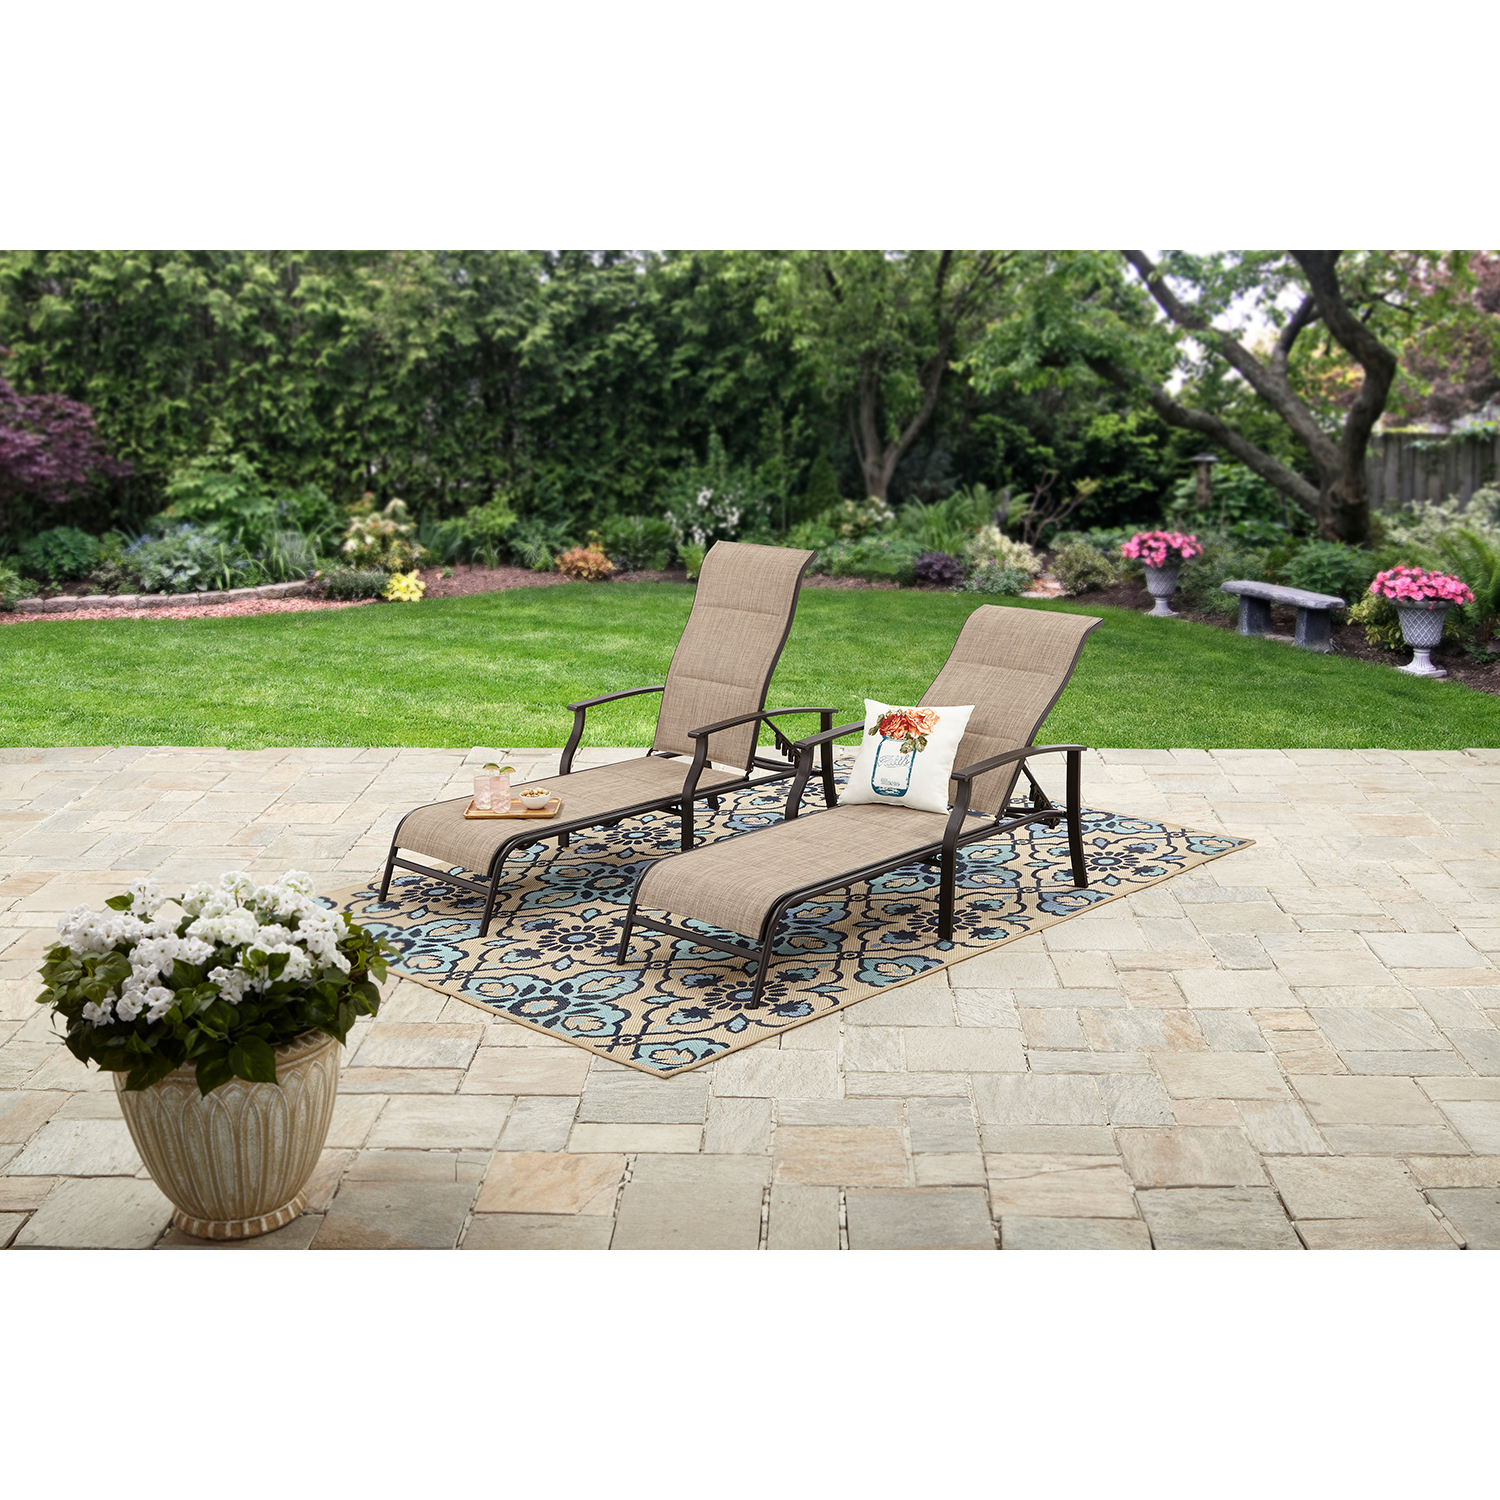 Mainstays Highland Knolls Outdoor Chaise Lounges, Set of 2 by Courtyard Creations Inc